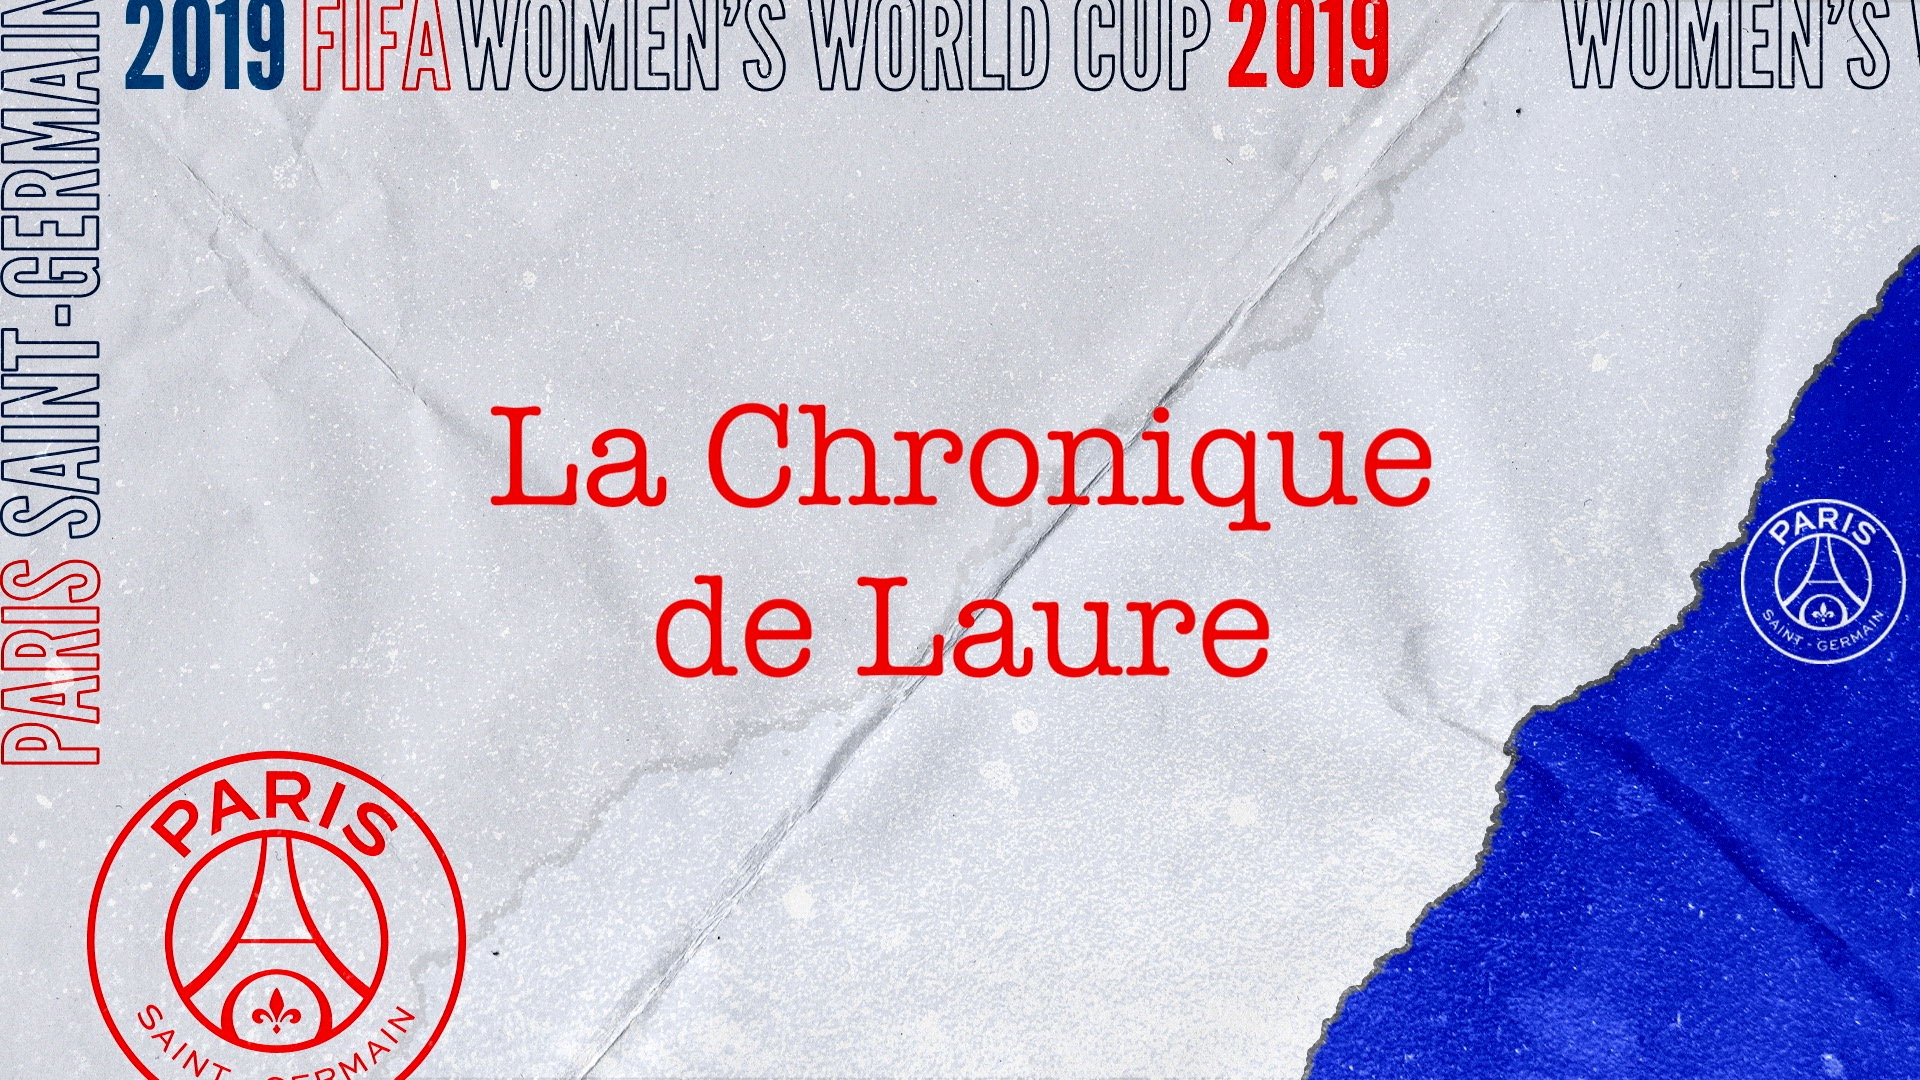 Women's World Cup Diary: With Laure!